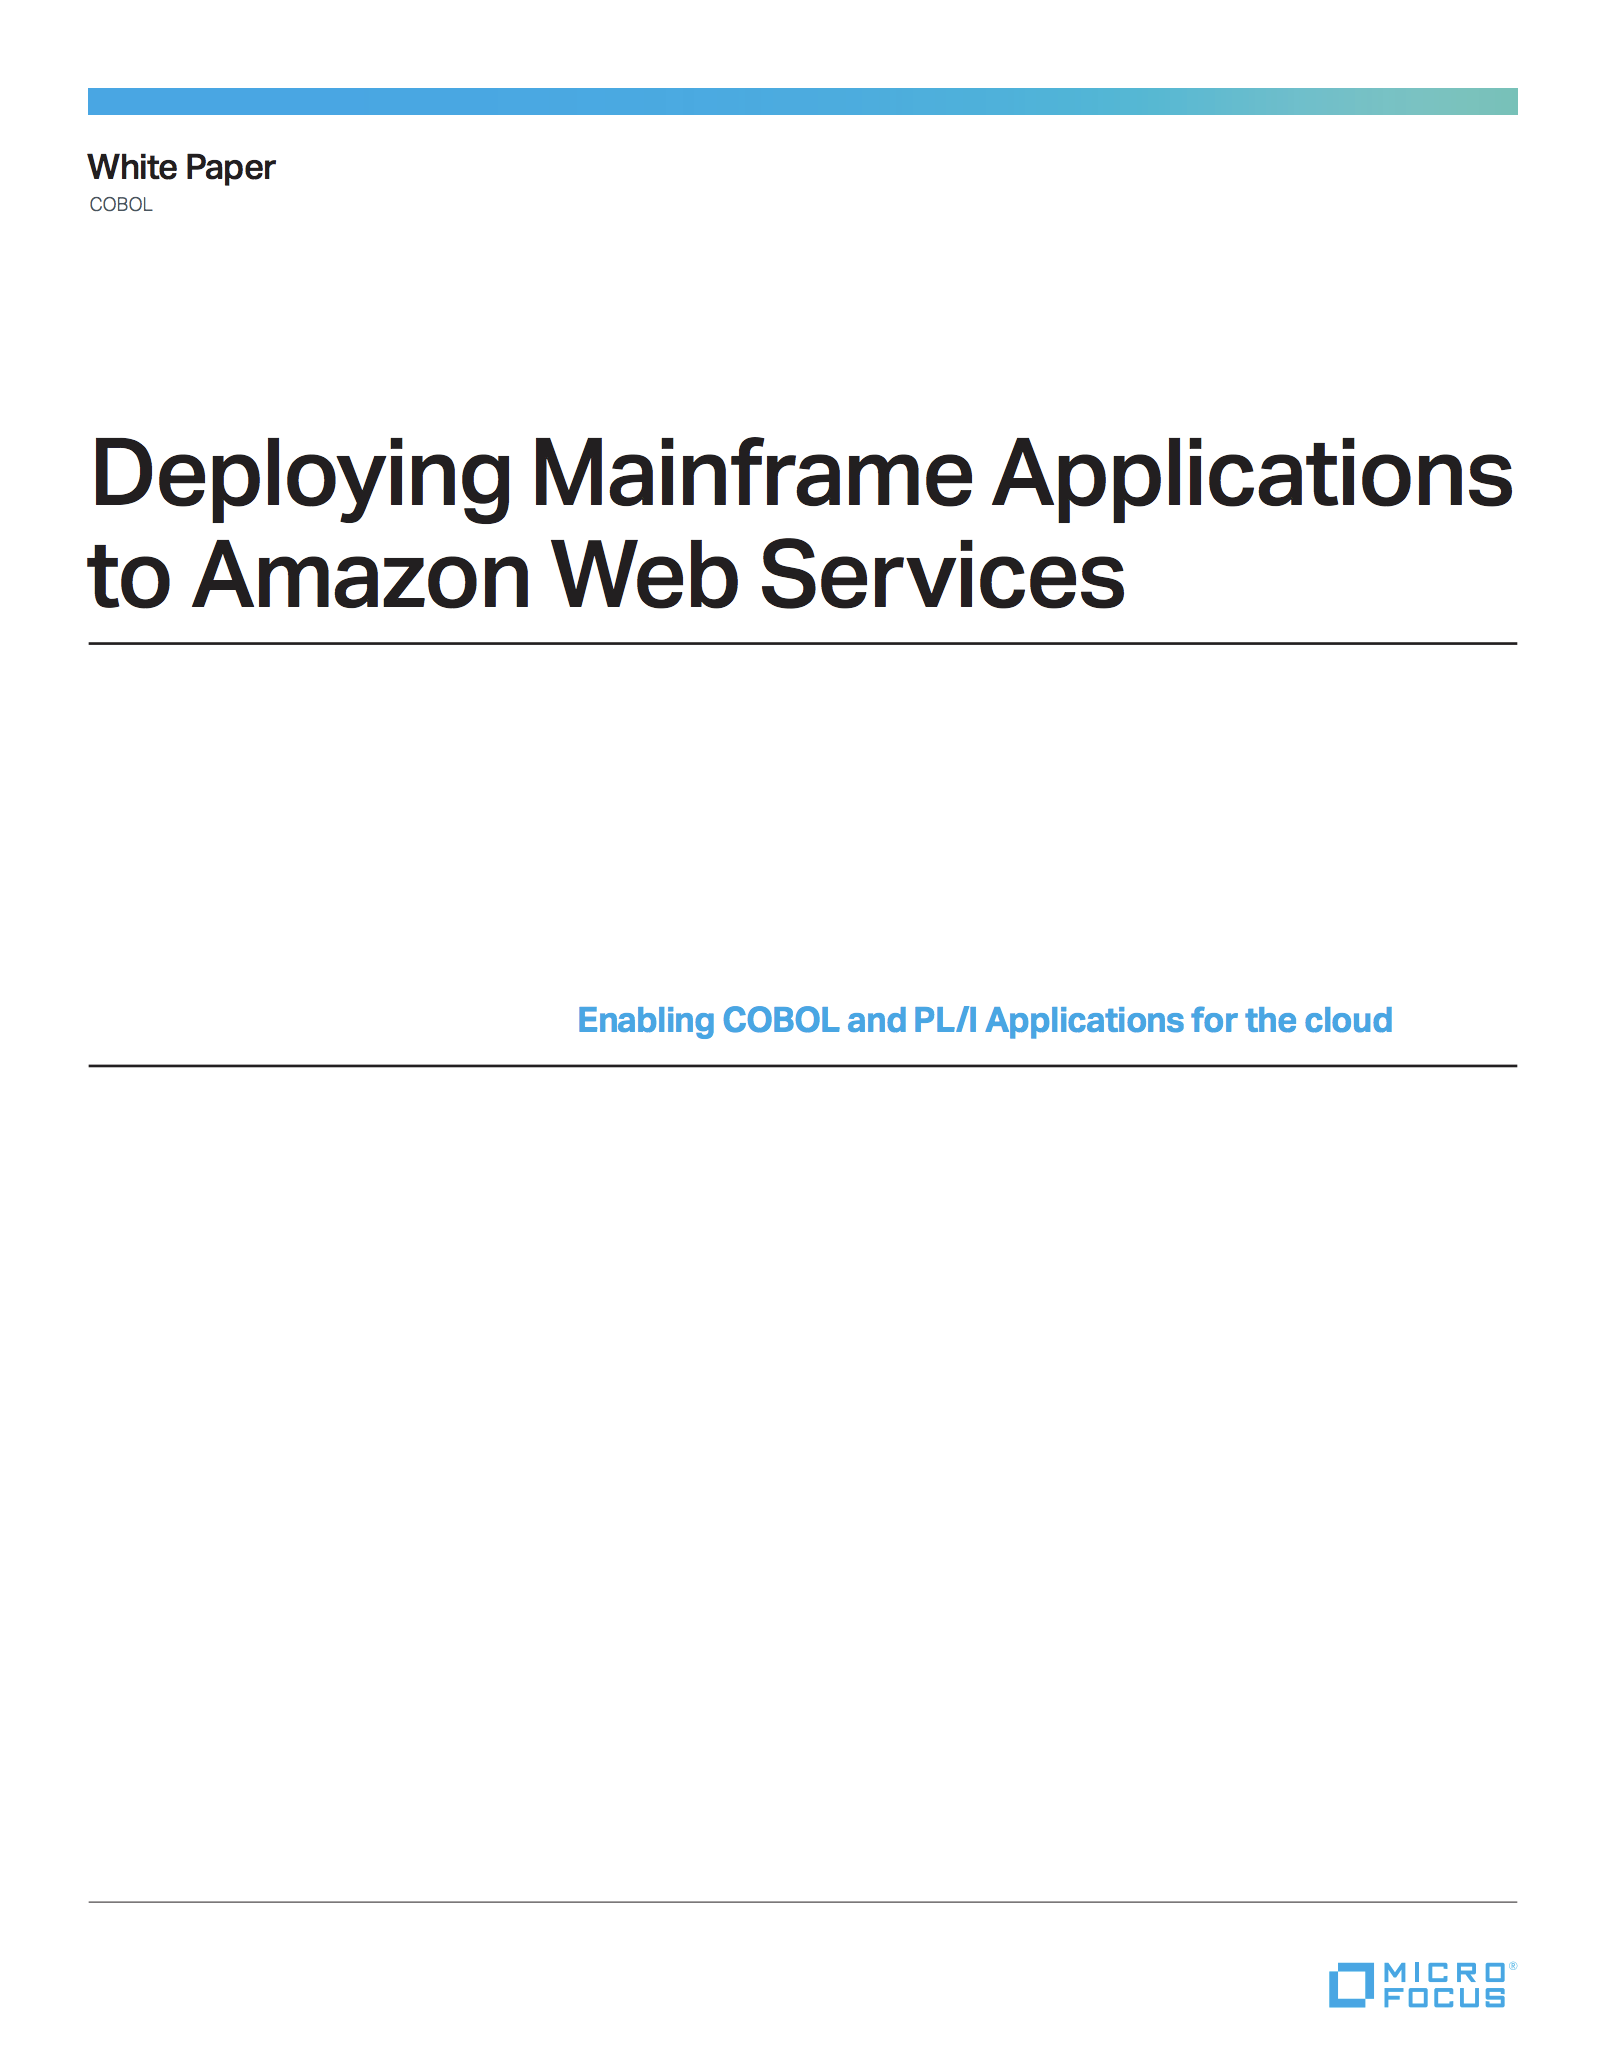 Deploying Mainframe Applications to Amazon Web Services